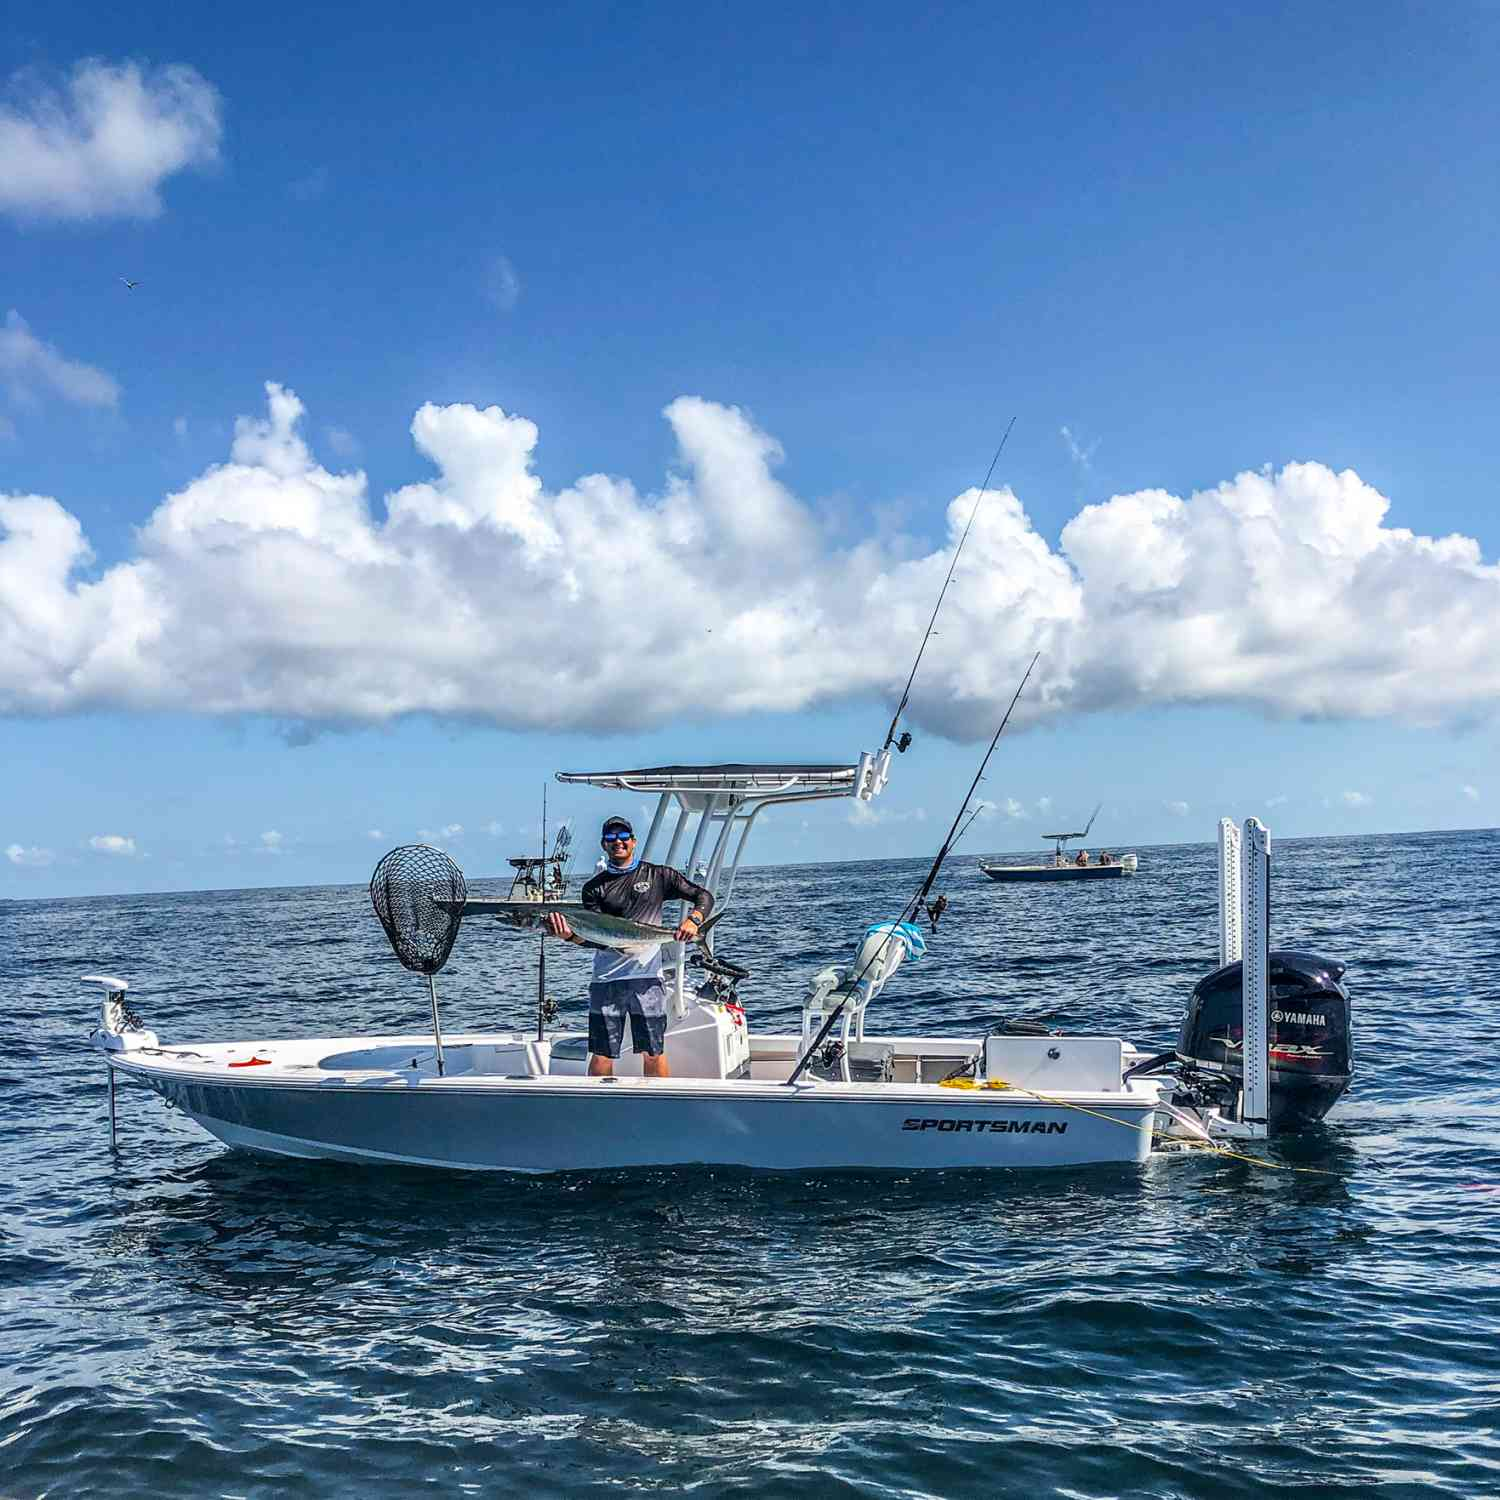 Title: 214T at the Nearshore - On board their Sportsman Tournament 214 Bay Boat - Location: Charleston, SC. Participating in the Photo Contest #SportsmanJanuary2021